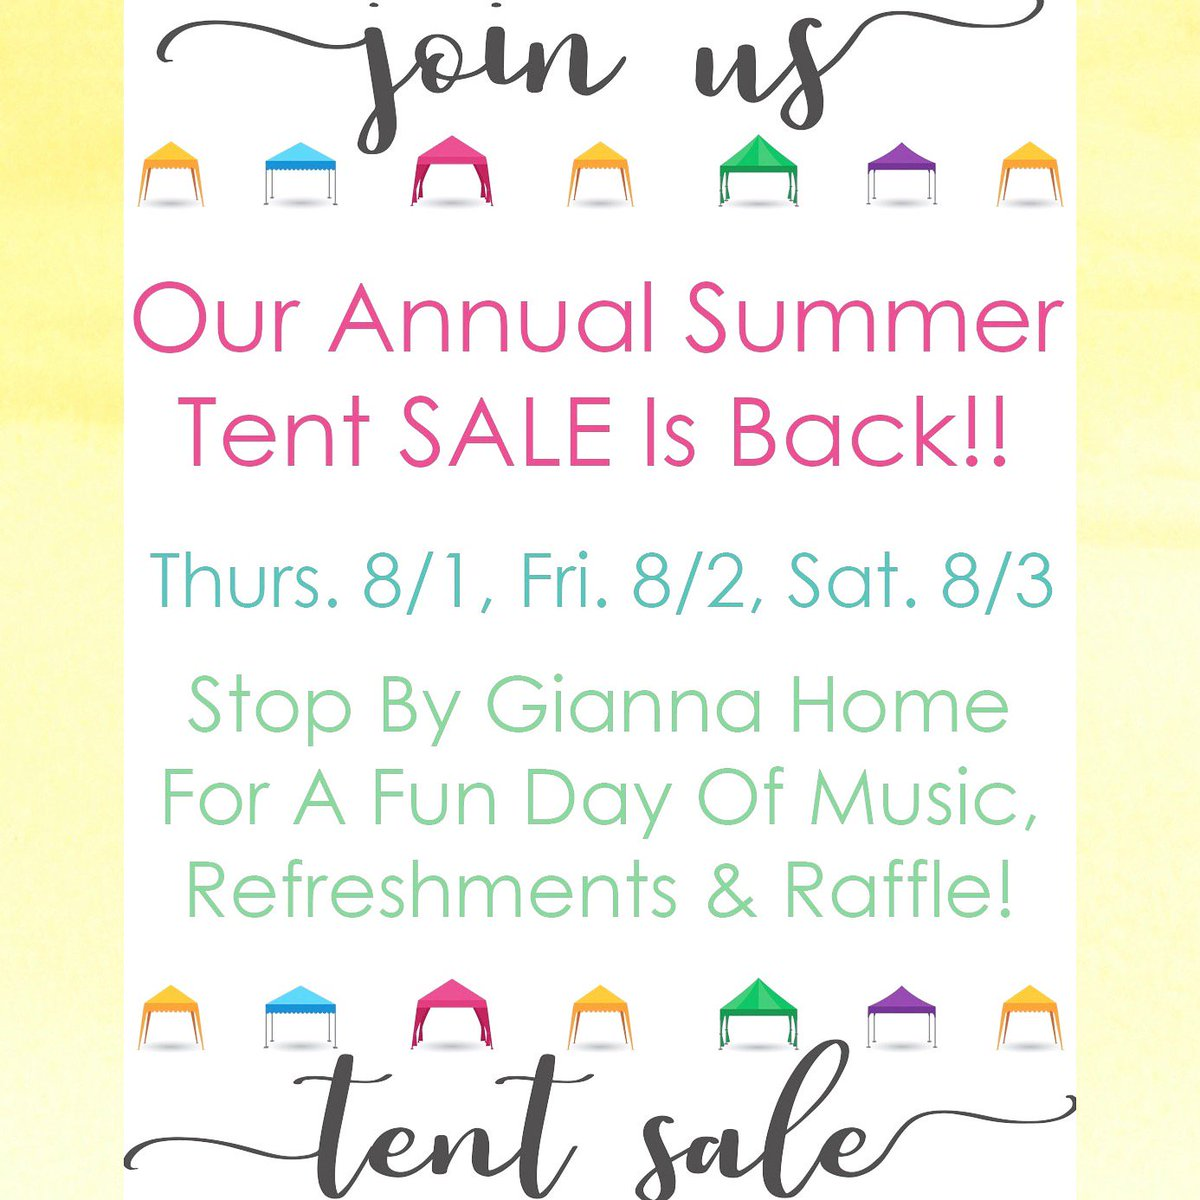 ✨You're Invited✨ #joinus for our annual #summer #tentsale ☀️ #amazing #deals on our selected #furniture & #decor 🛋 Also, stop by & #view our #new Talk Of The Town items & #meet the #creators of #tott on #saturday Aug. 3rd!!  . . . #sale #gift #gifts #august #boutique #store